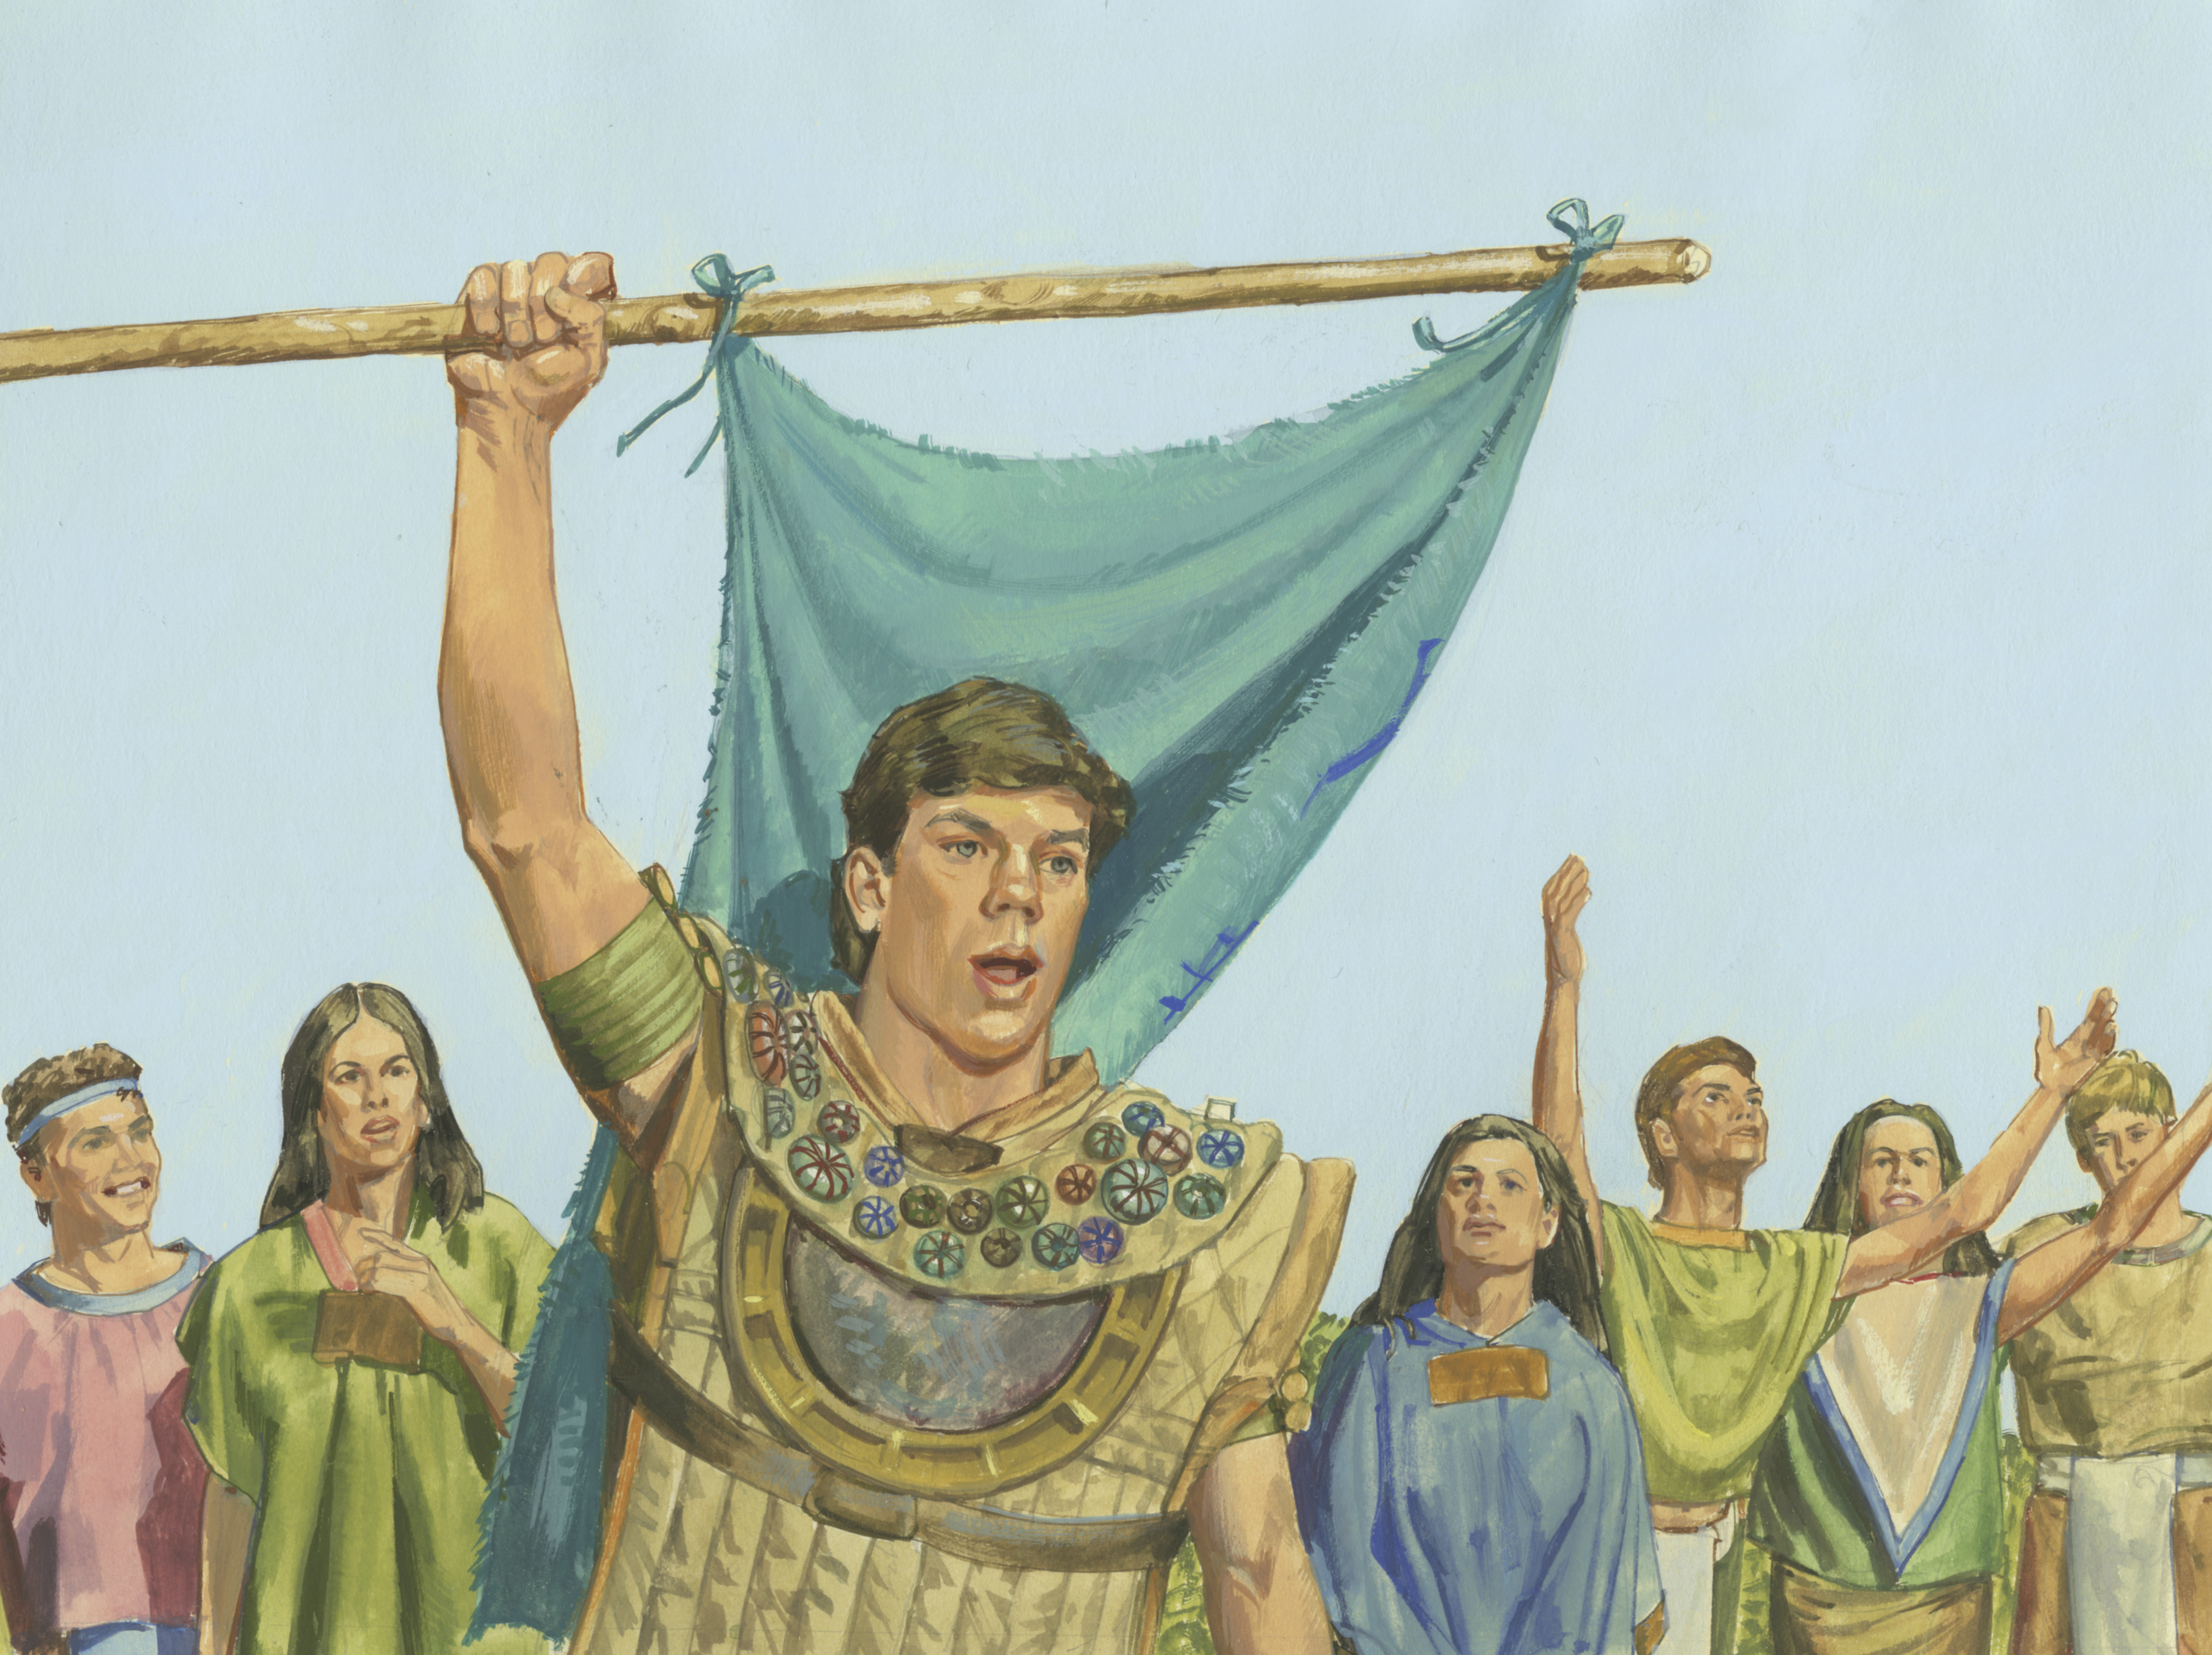 A painting by Jerry Thompson depicting Captain Moroni raising the title of liberty; Primary manual 4-39